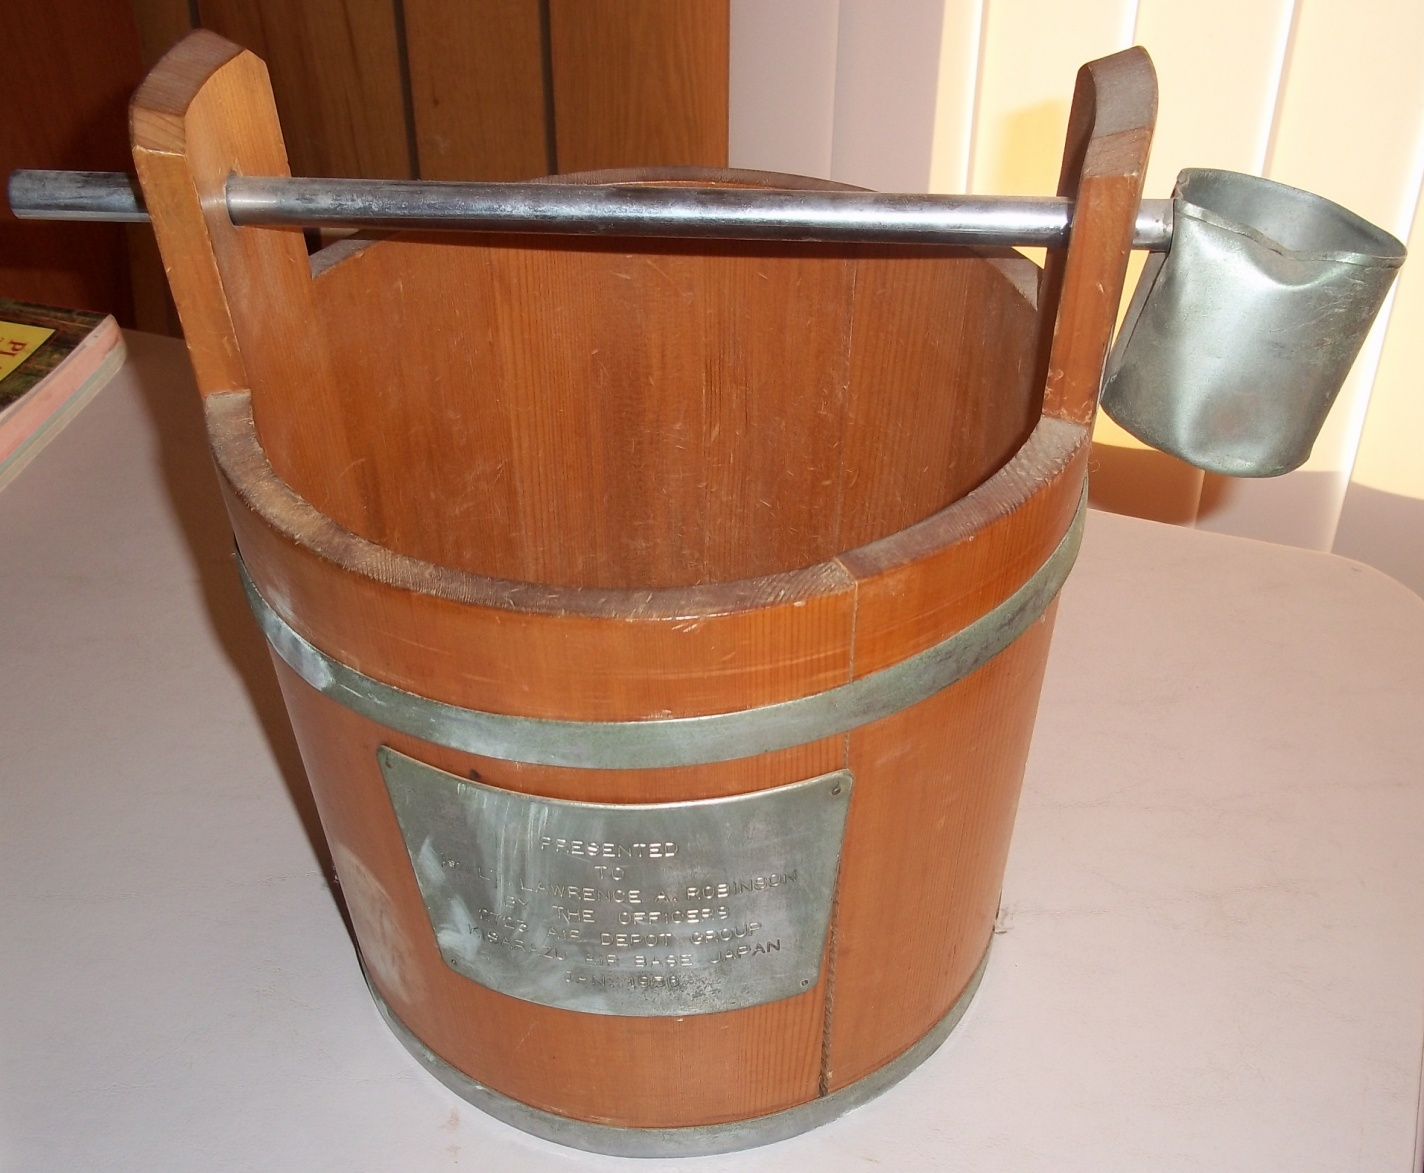 Click image for larger version  Name:Dad's bucket 004.jpg Views:57 Size:411.8 KB ID:63807